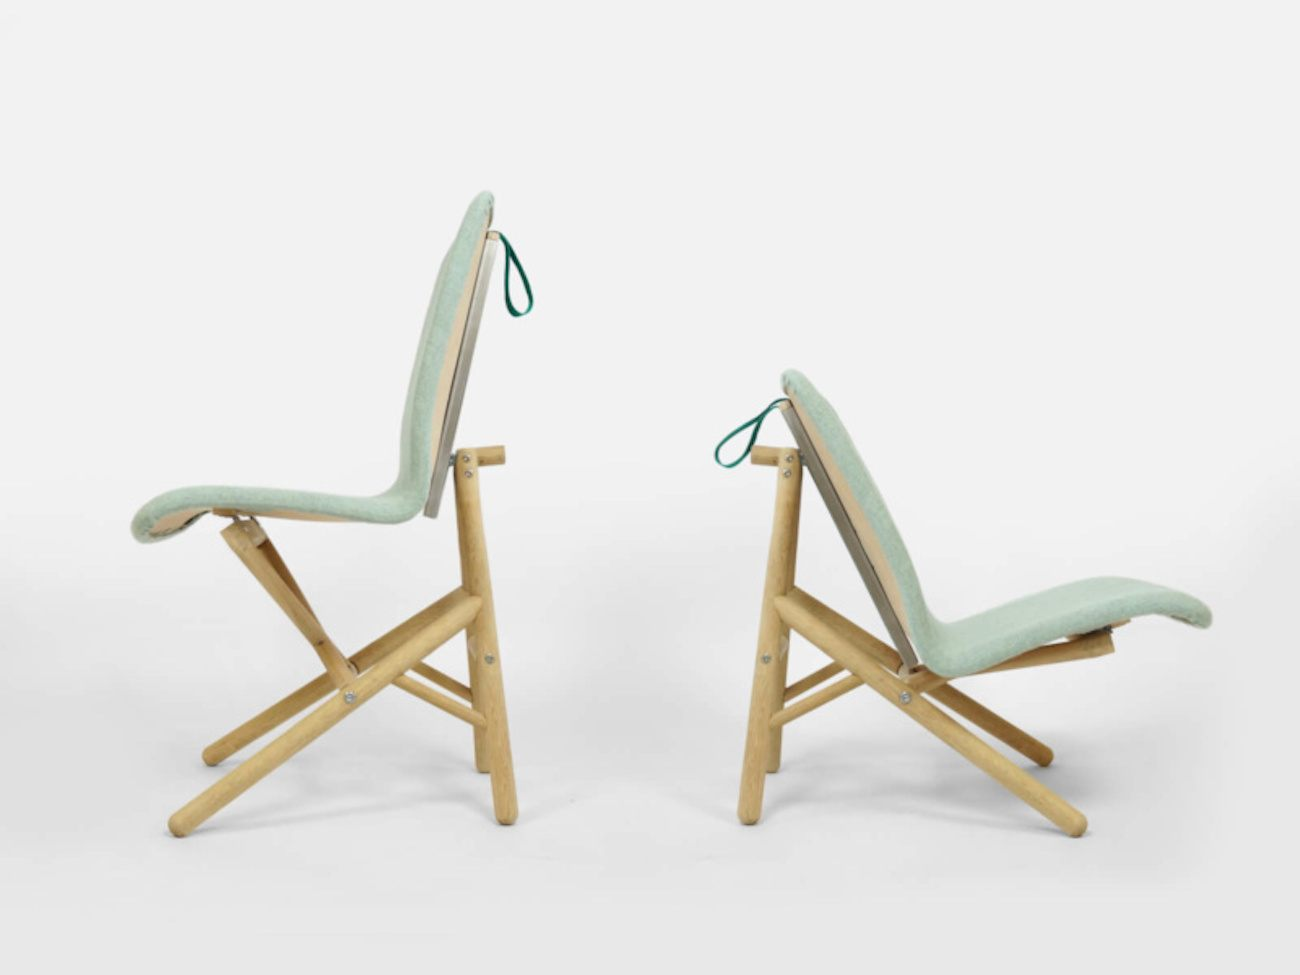 Hybrid Chair by Studio Lorier